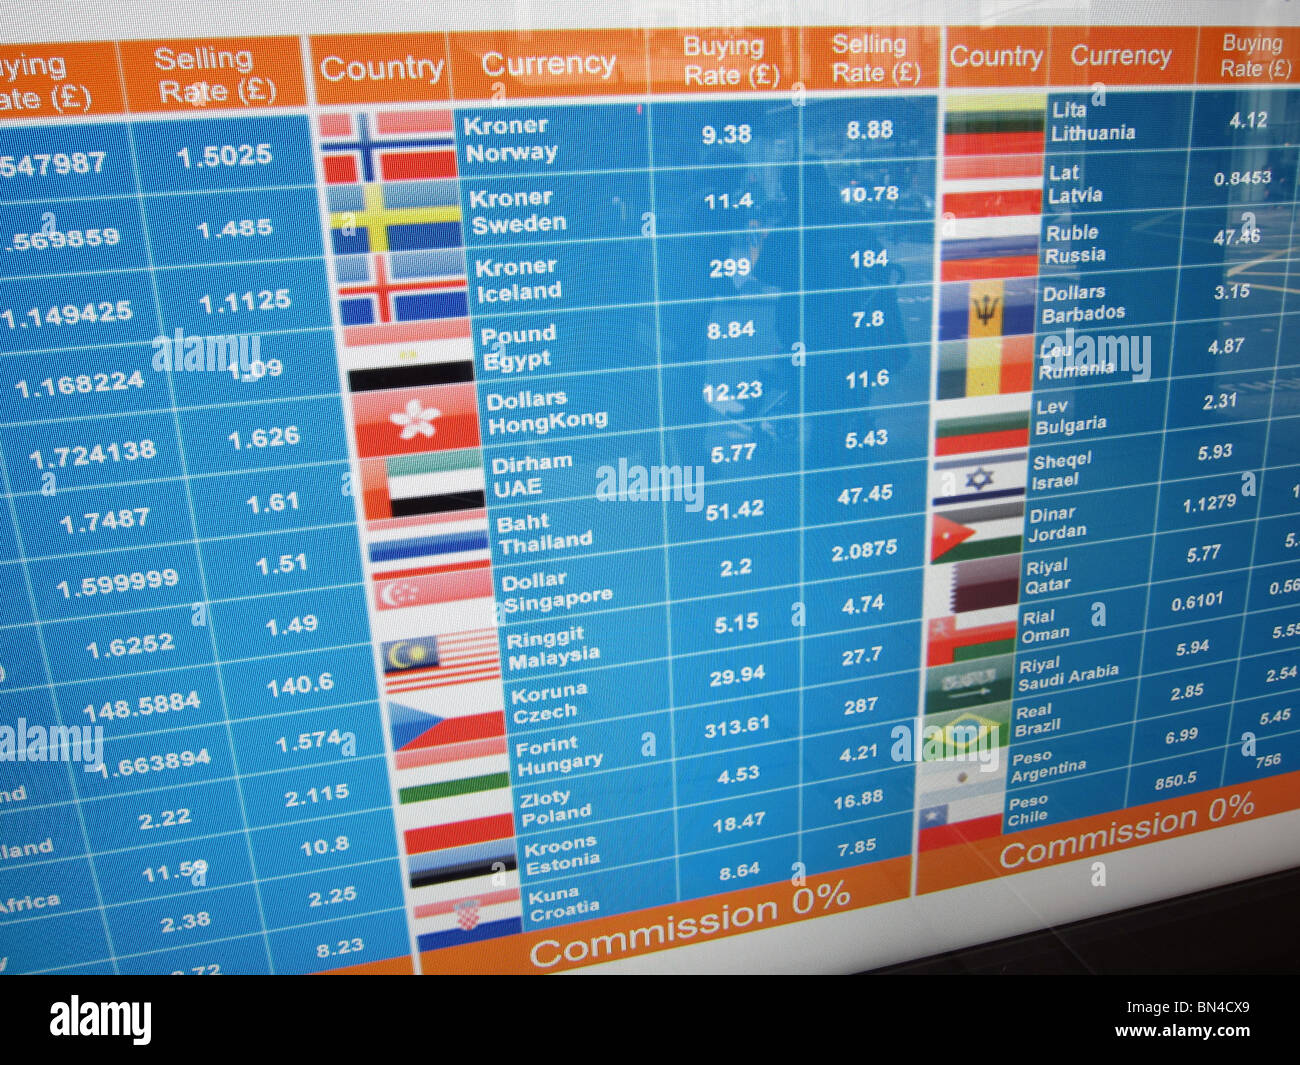 Currency rates in pakistan forex